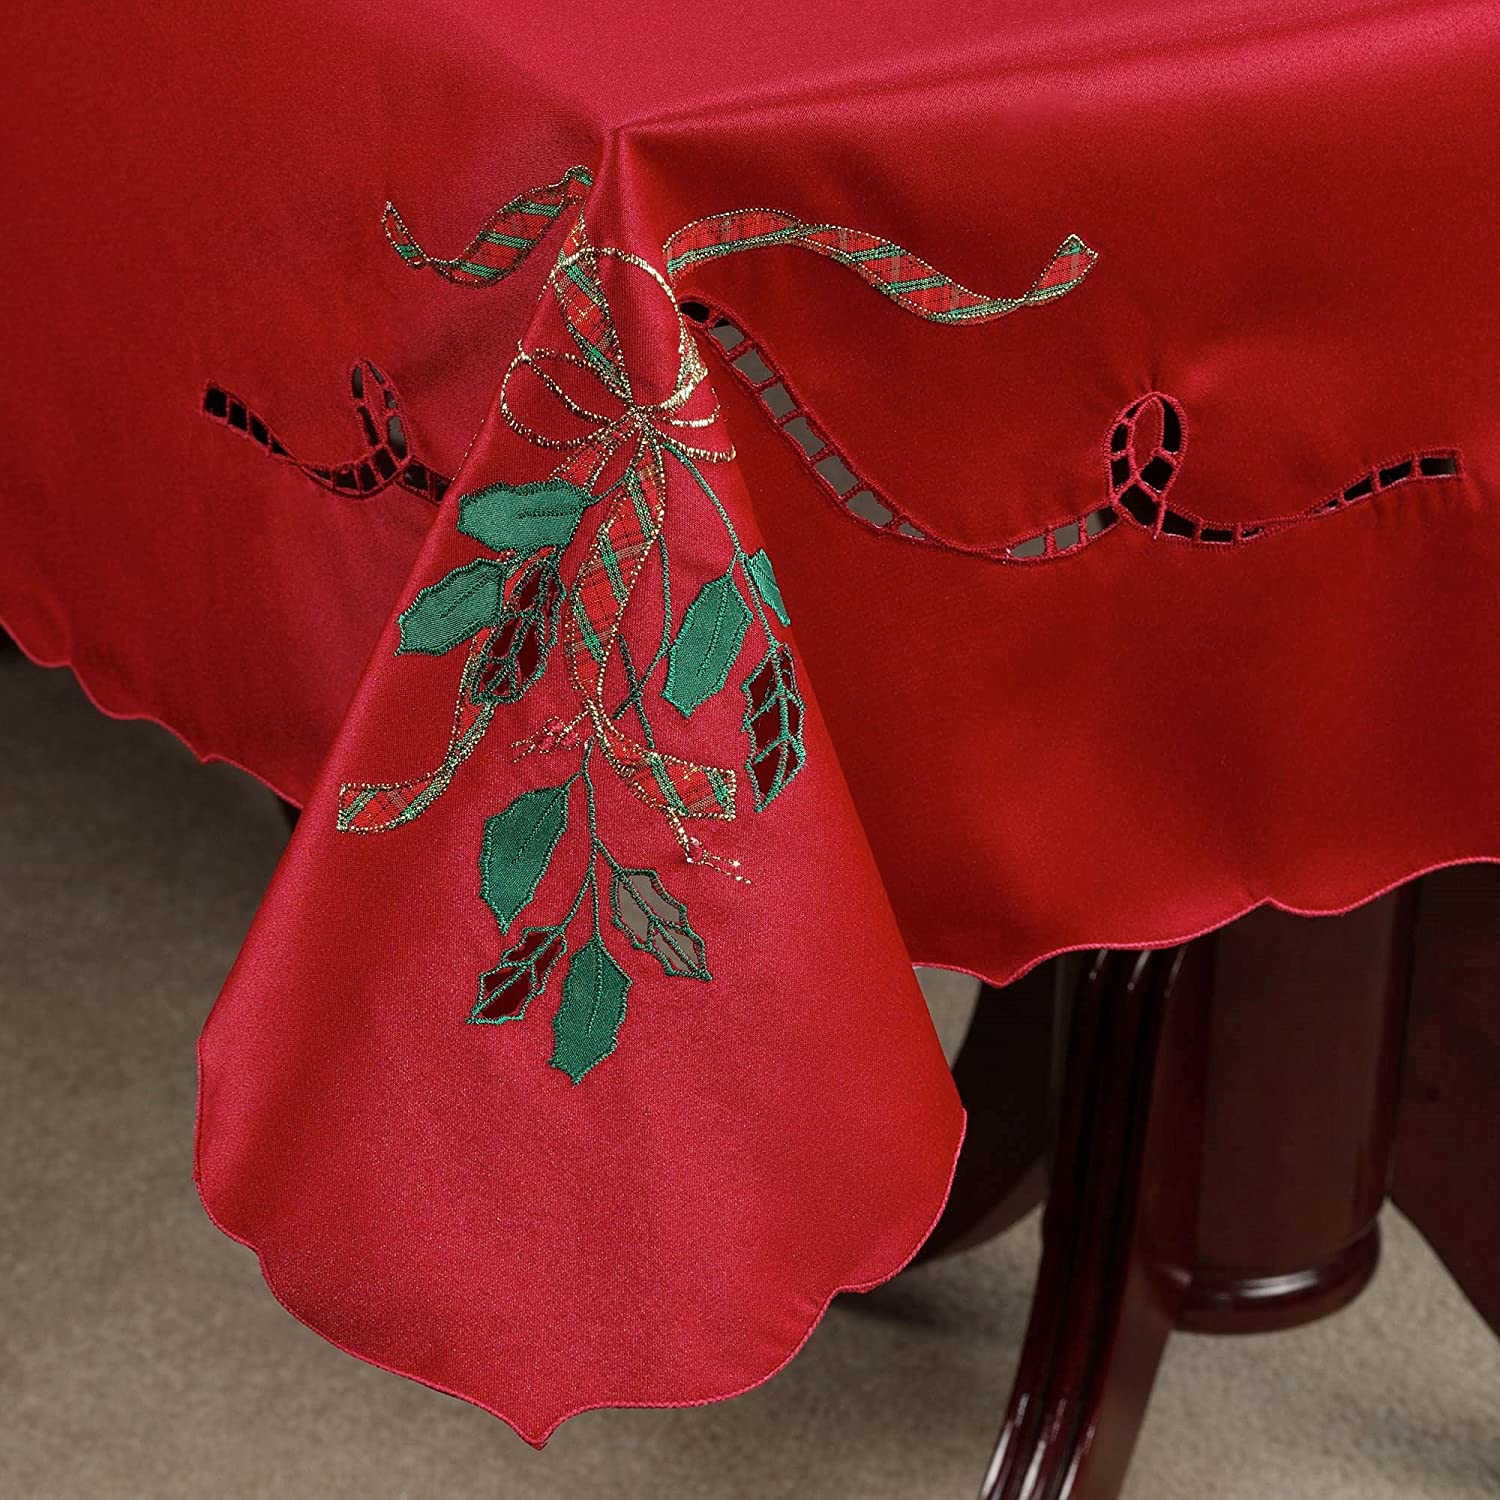 60 X 140 Oblong Red Lenox Cutwork Holiday Nouveau Christmas Tablecloth By Bardwill